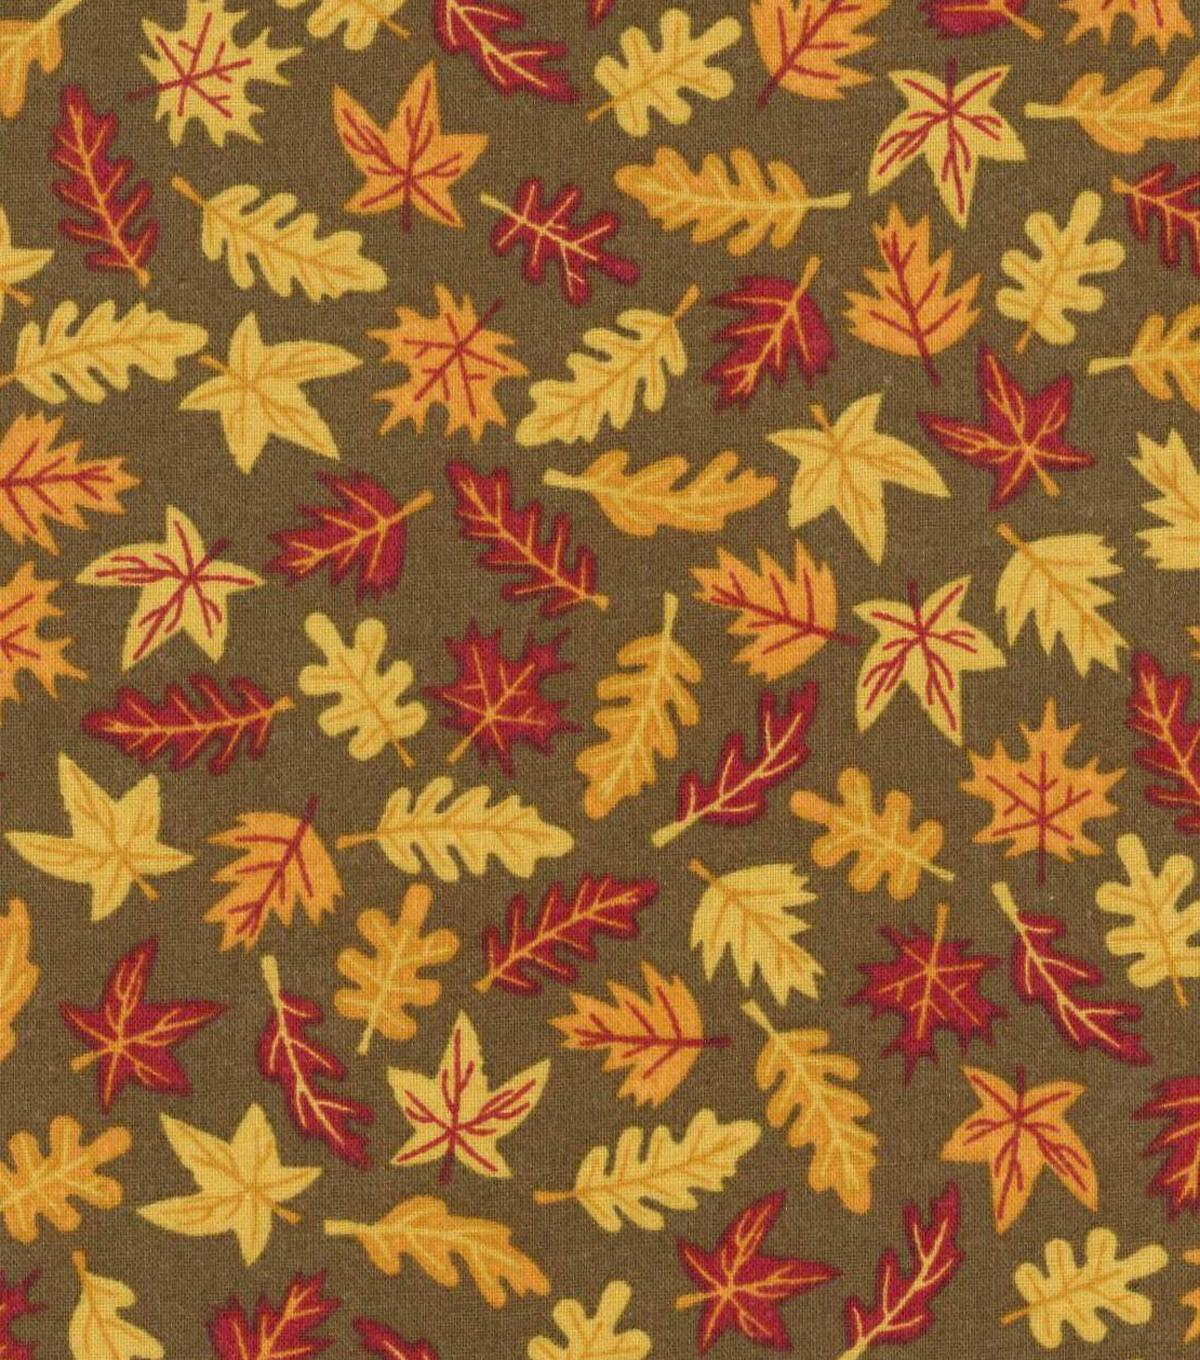 Autumn Inspirations Harvest Fabric Mini Leaves Brown Ann